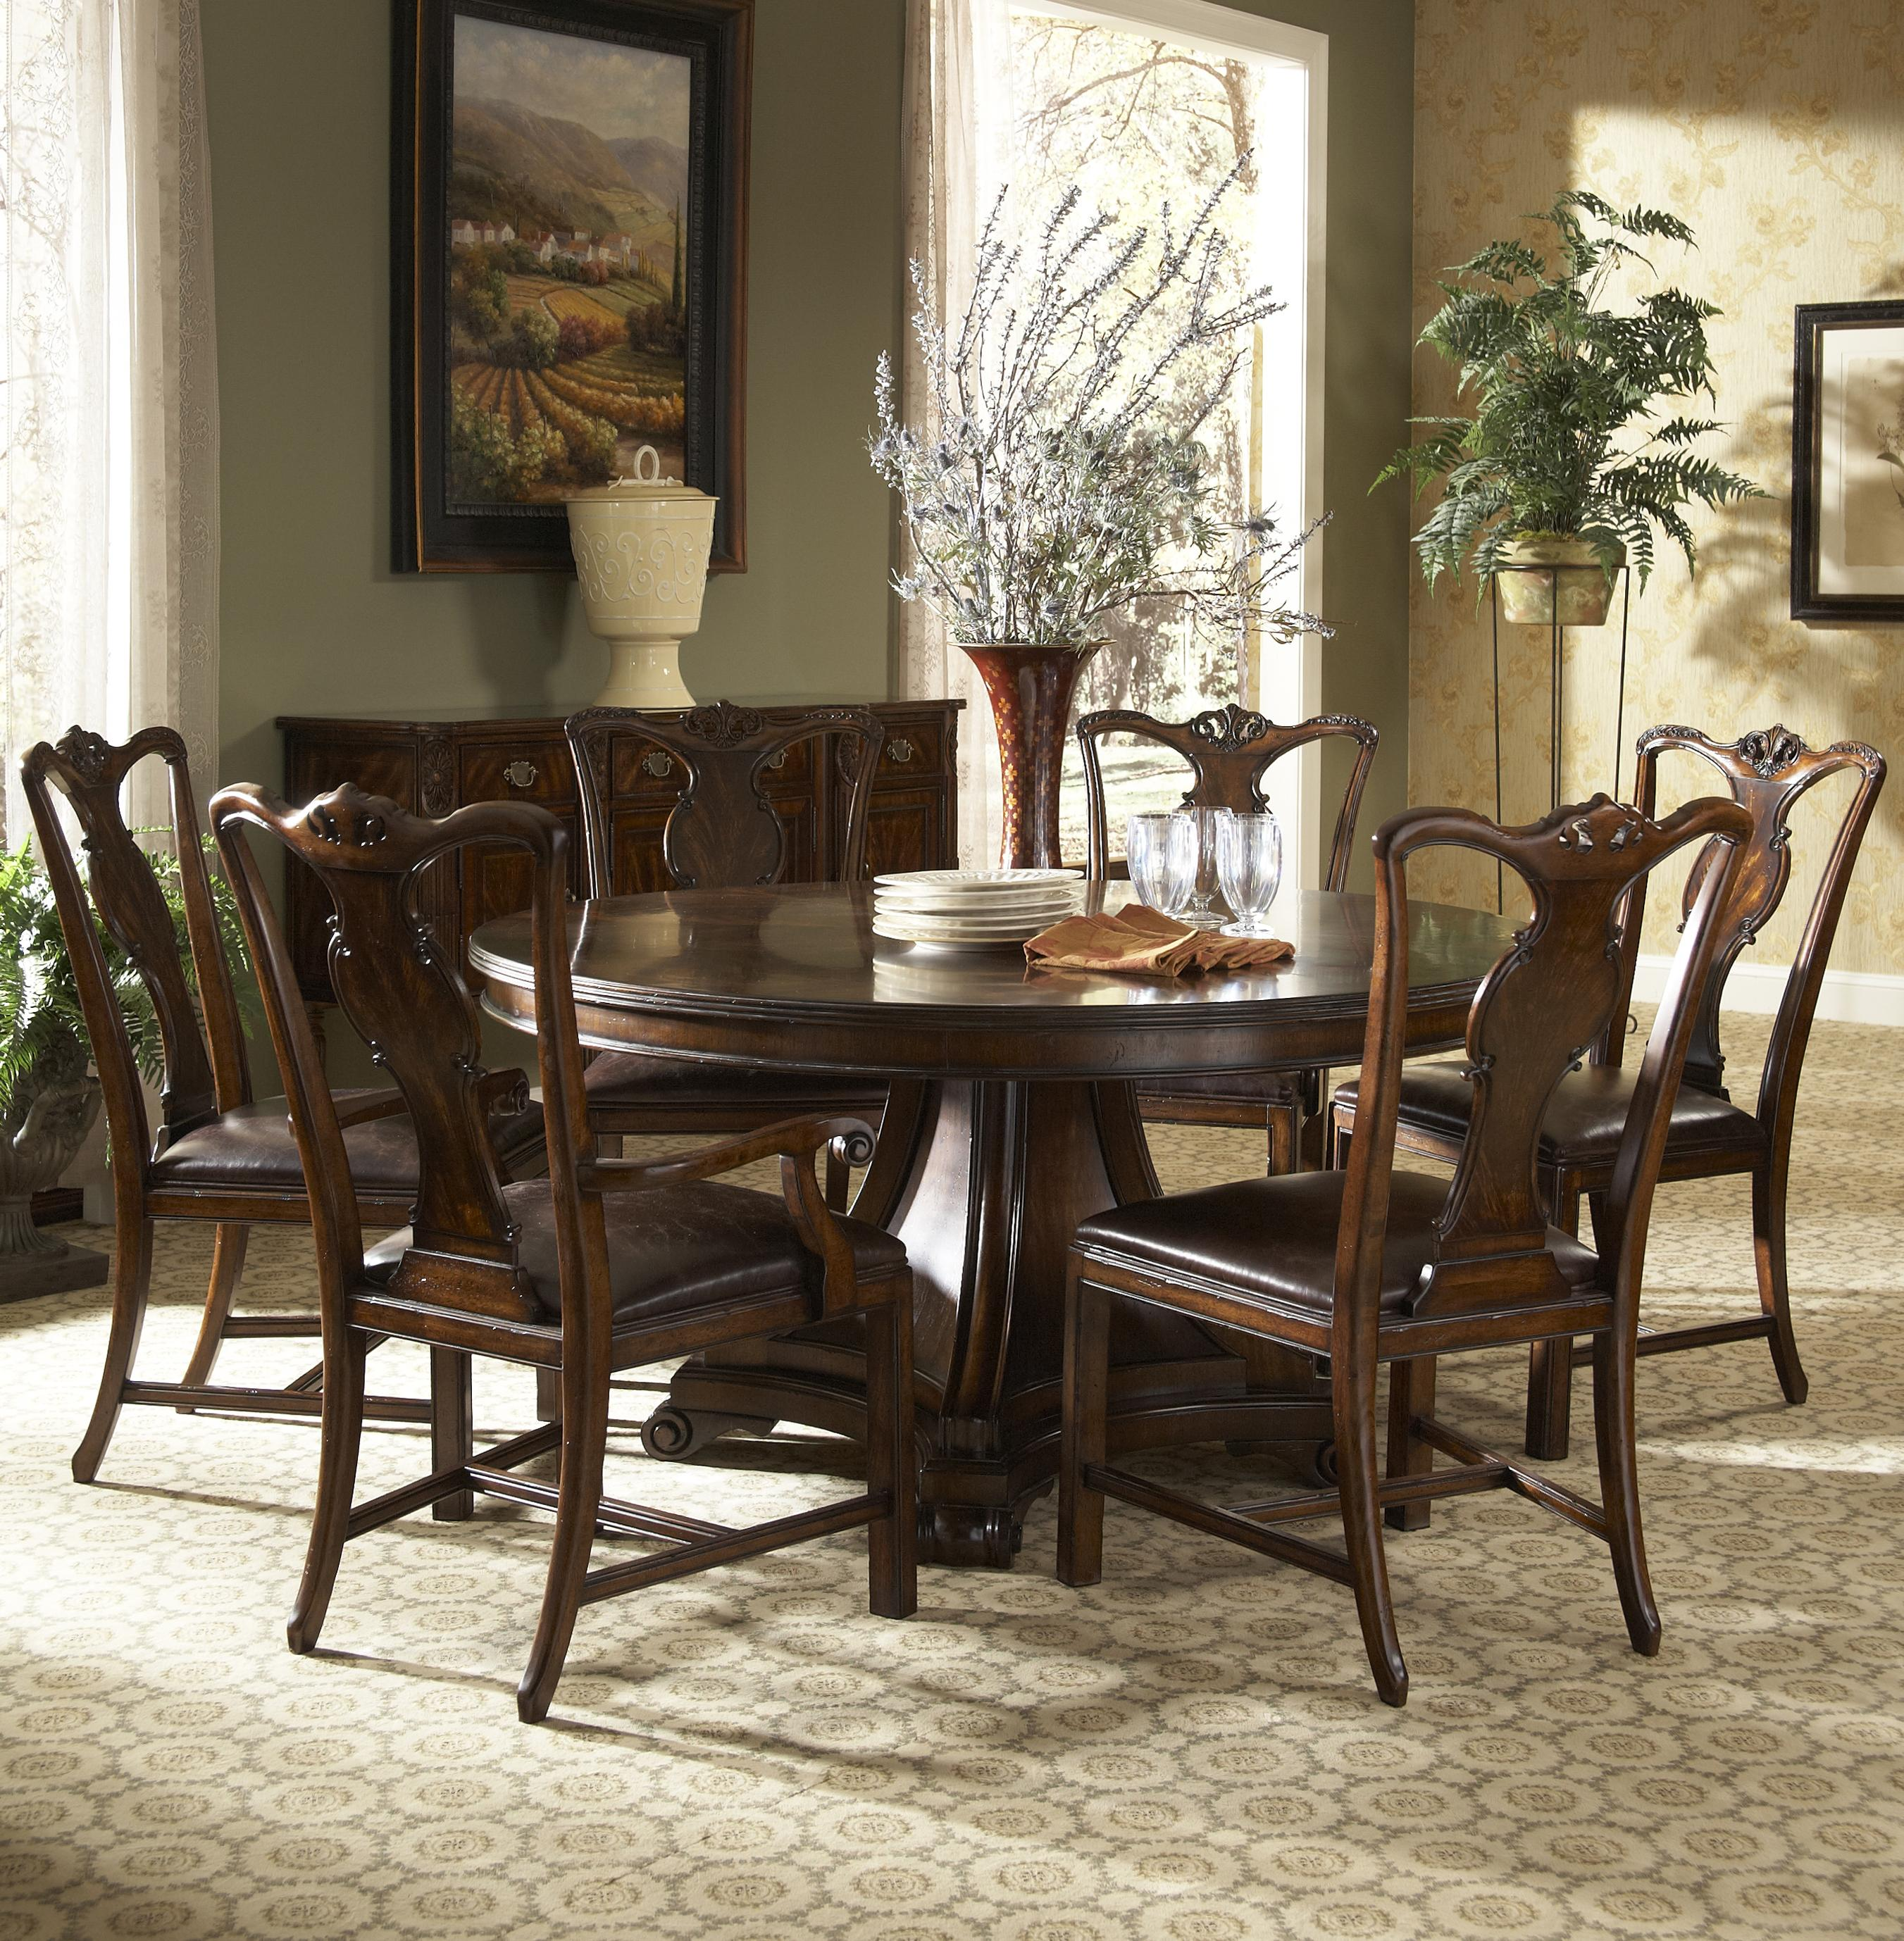 7 piece dining table and chairs set